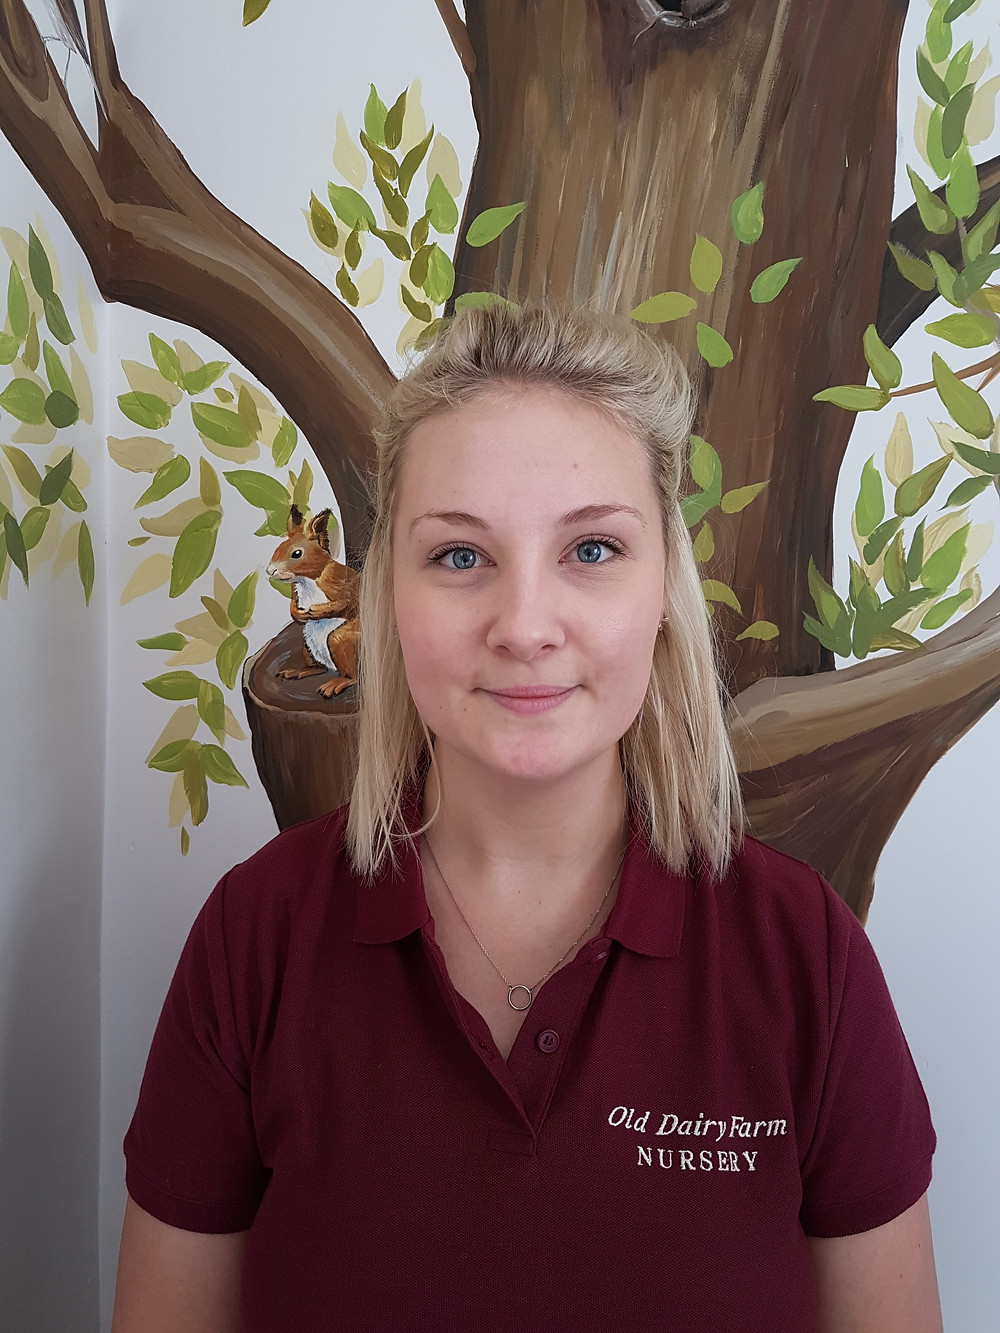 ucy Meeze – Chick / Ducklings Room Lead Level 3 qualified, working in childcare for nearly 4 years.